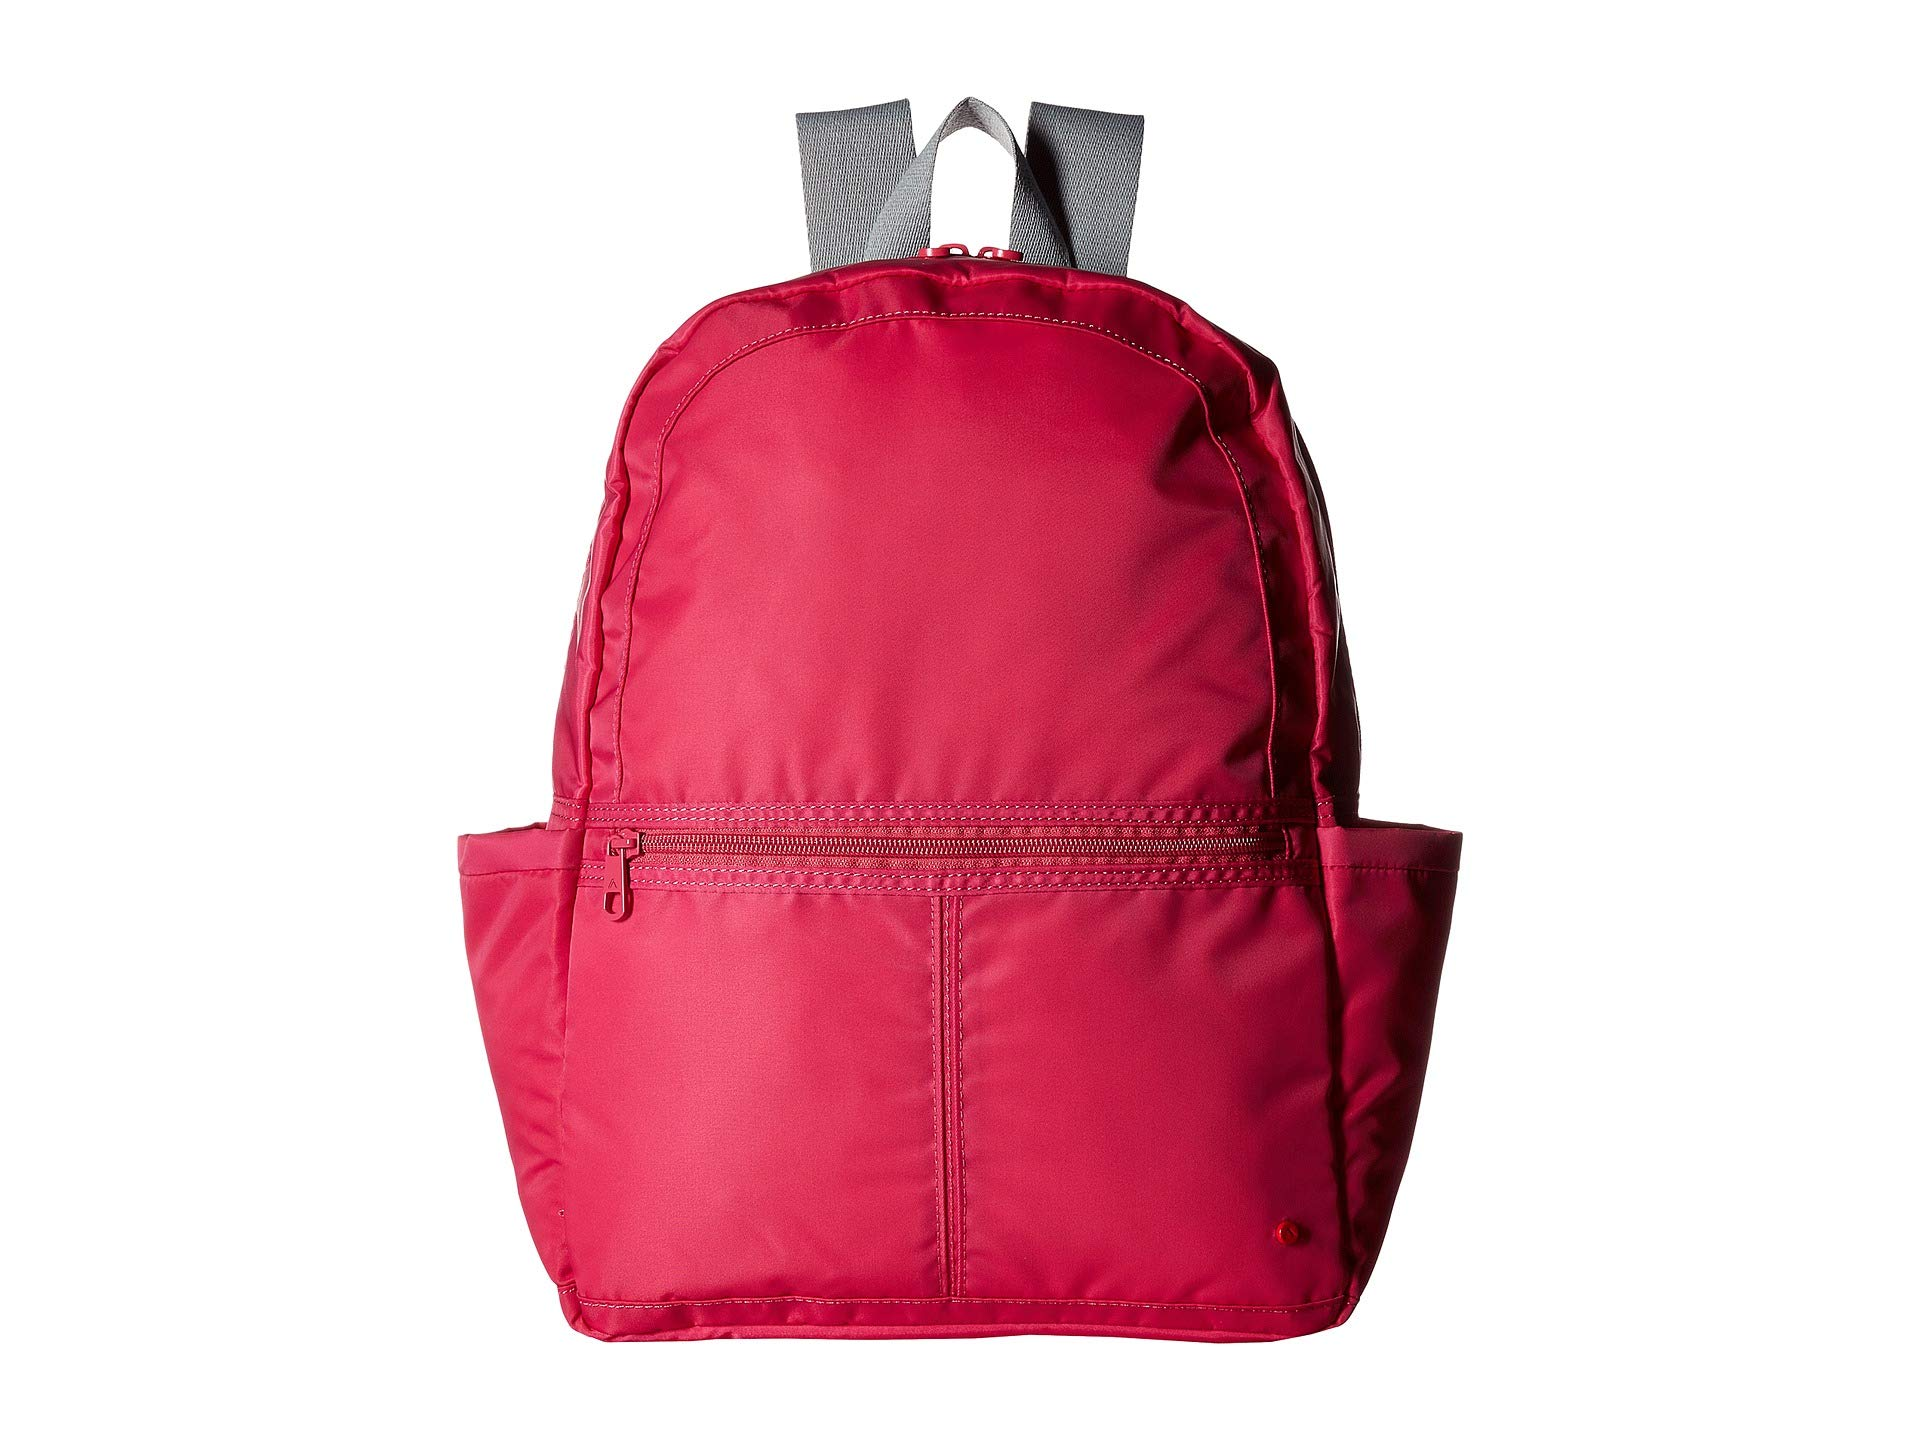 STATE Women's Kane Backpack, Blossom, Pink, One Size by STATE Bags